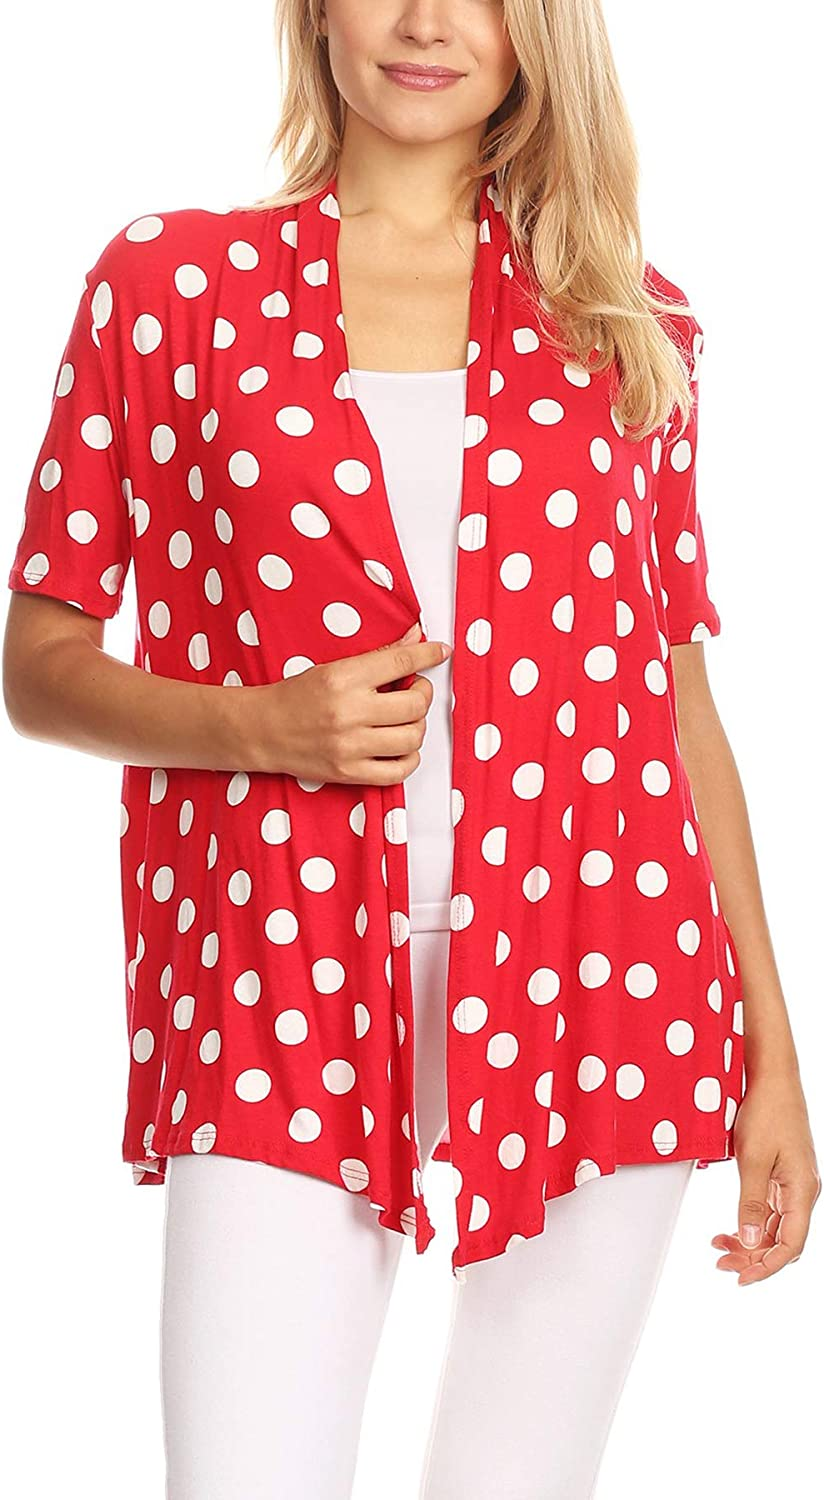 Women's Basic Short Sleeve Open Front Pattern Print Polka Dot Cardigan S-3XL Made in USA